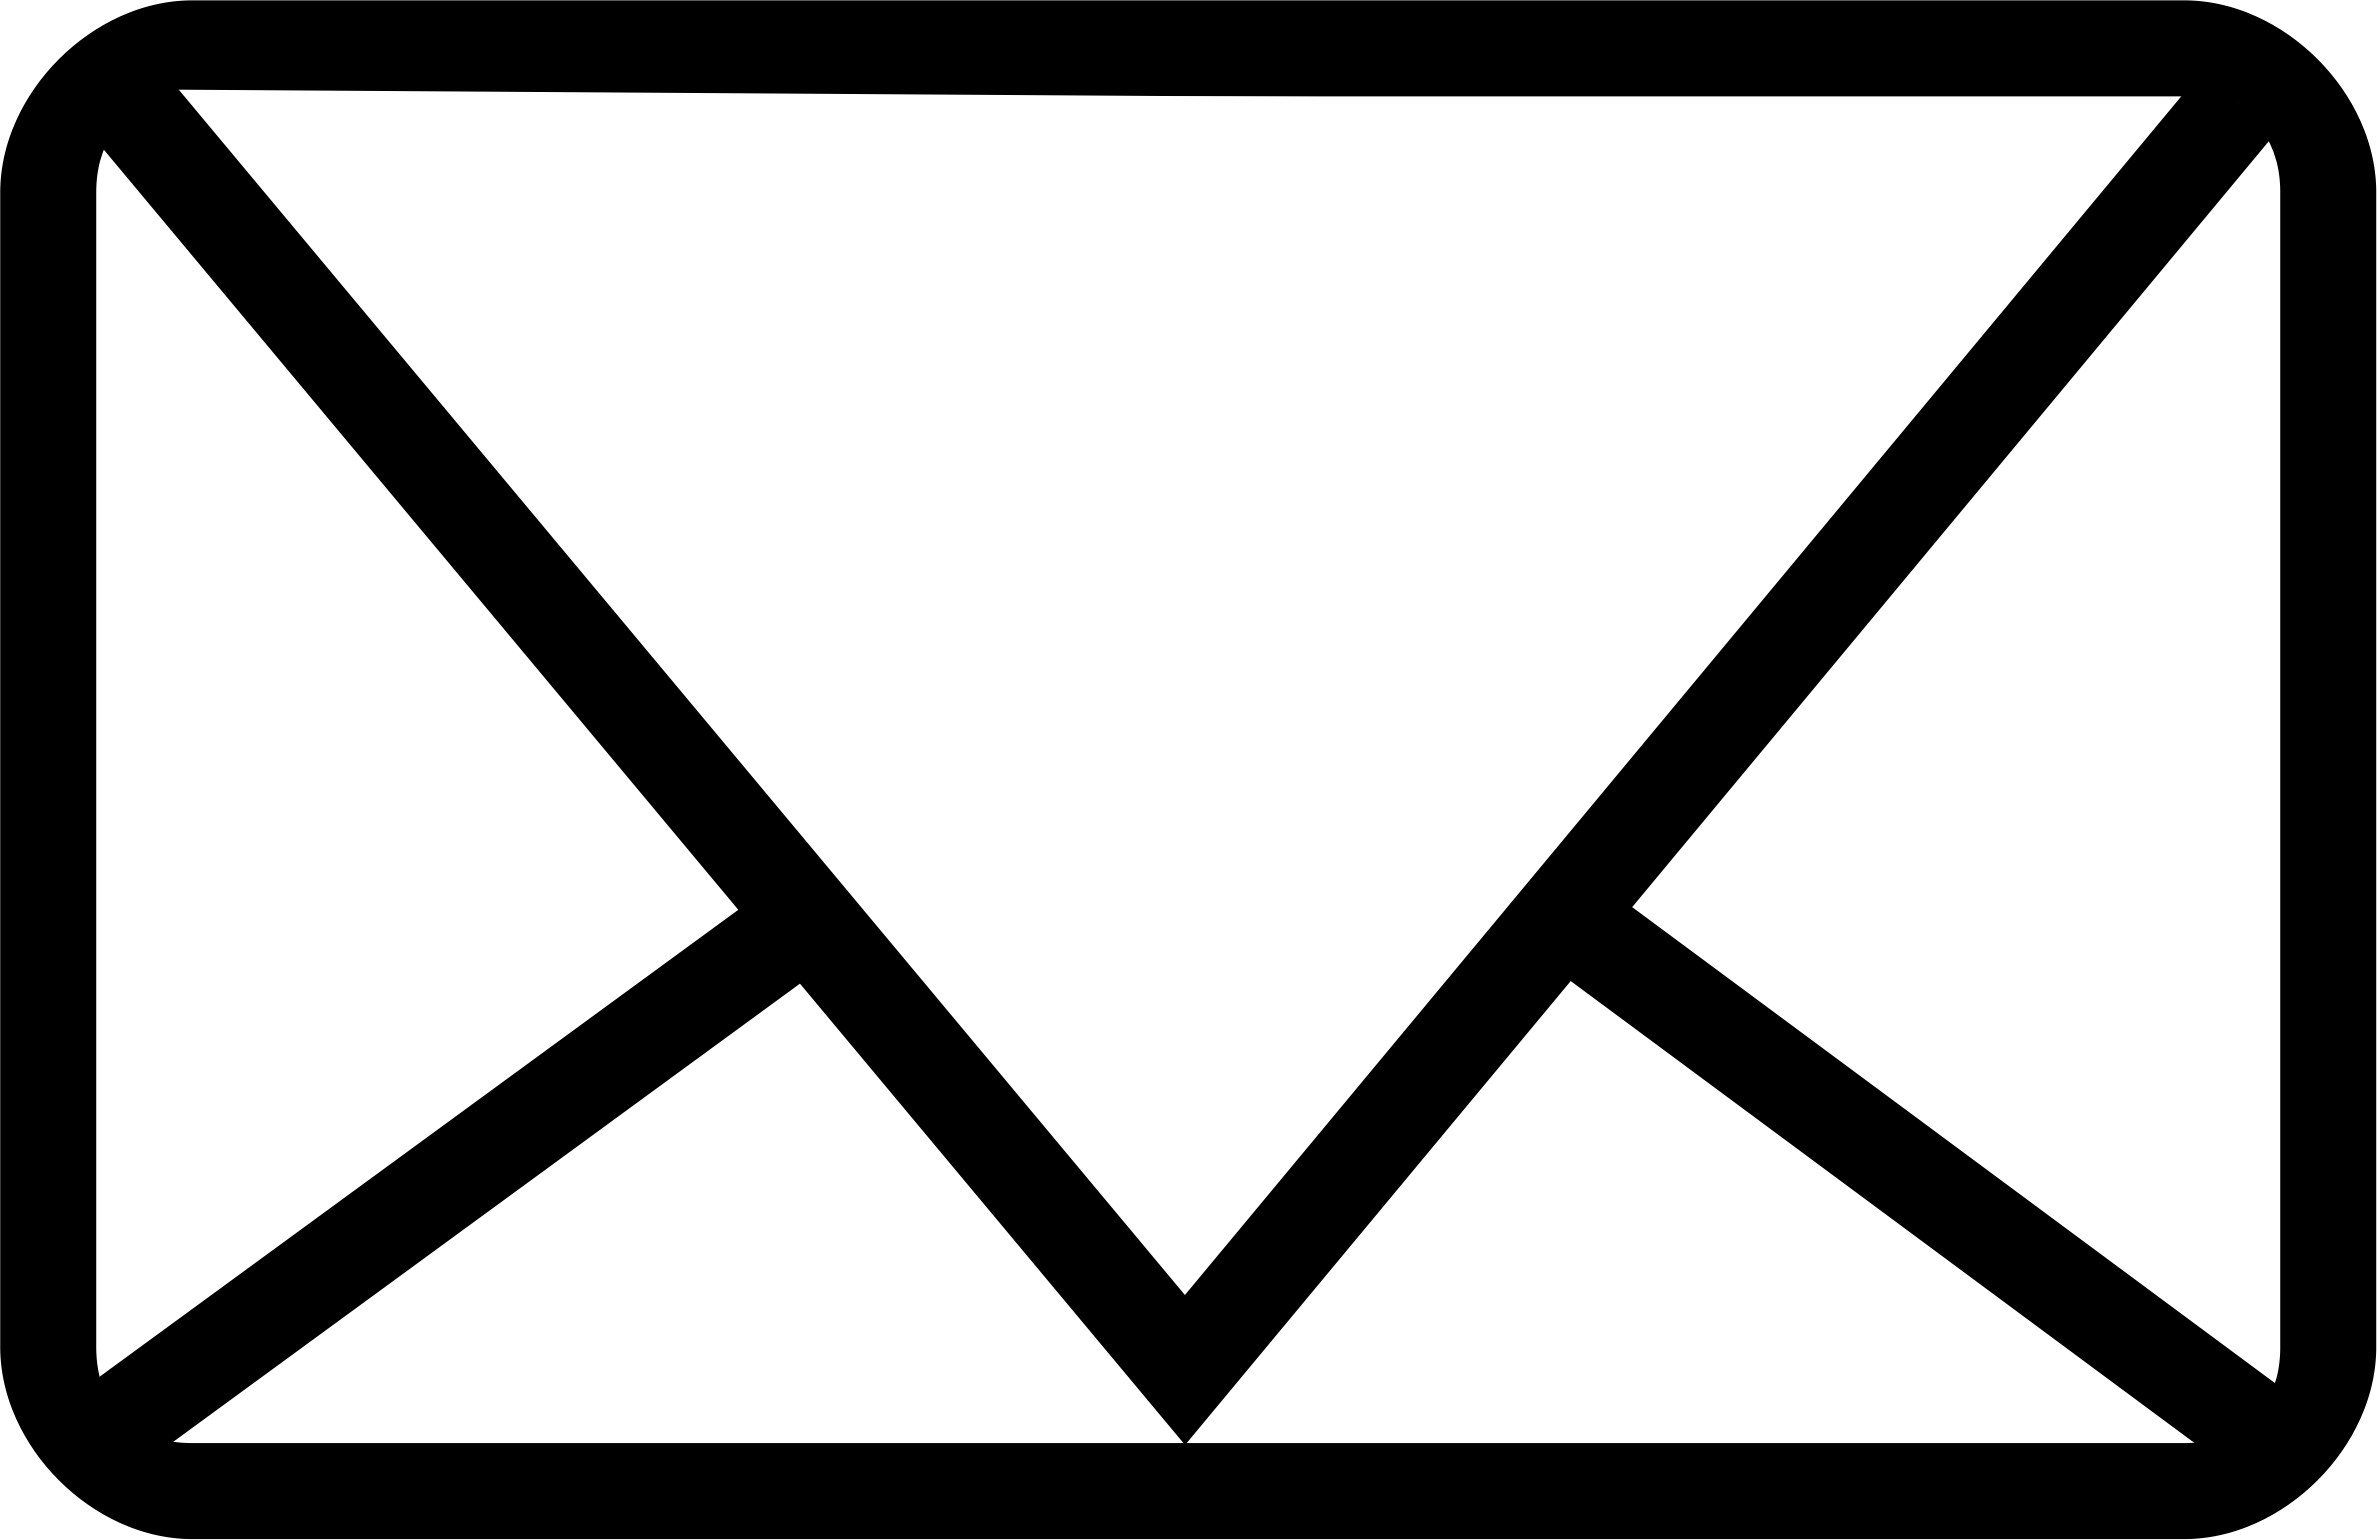 Mail Envelope by SavanaPrice